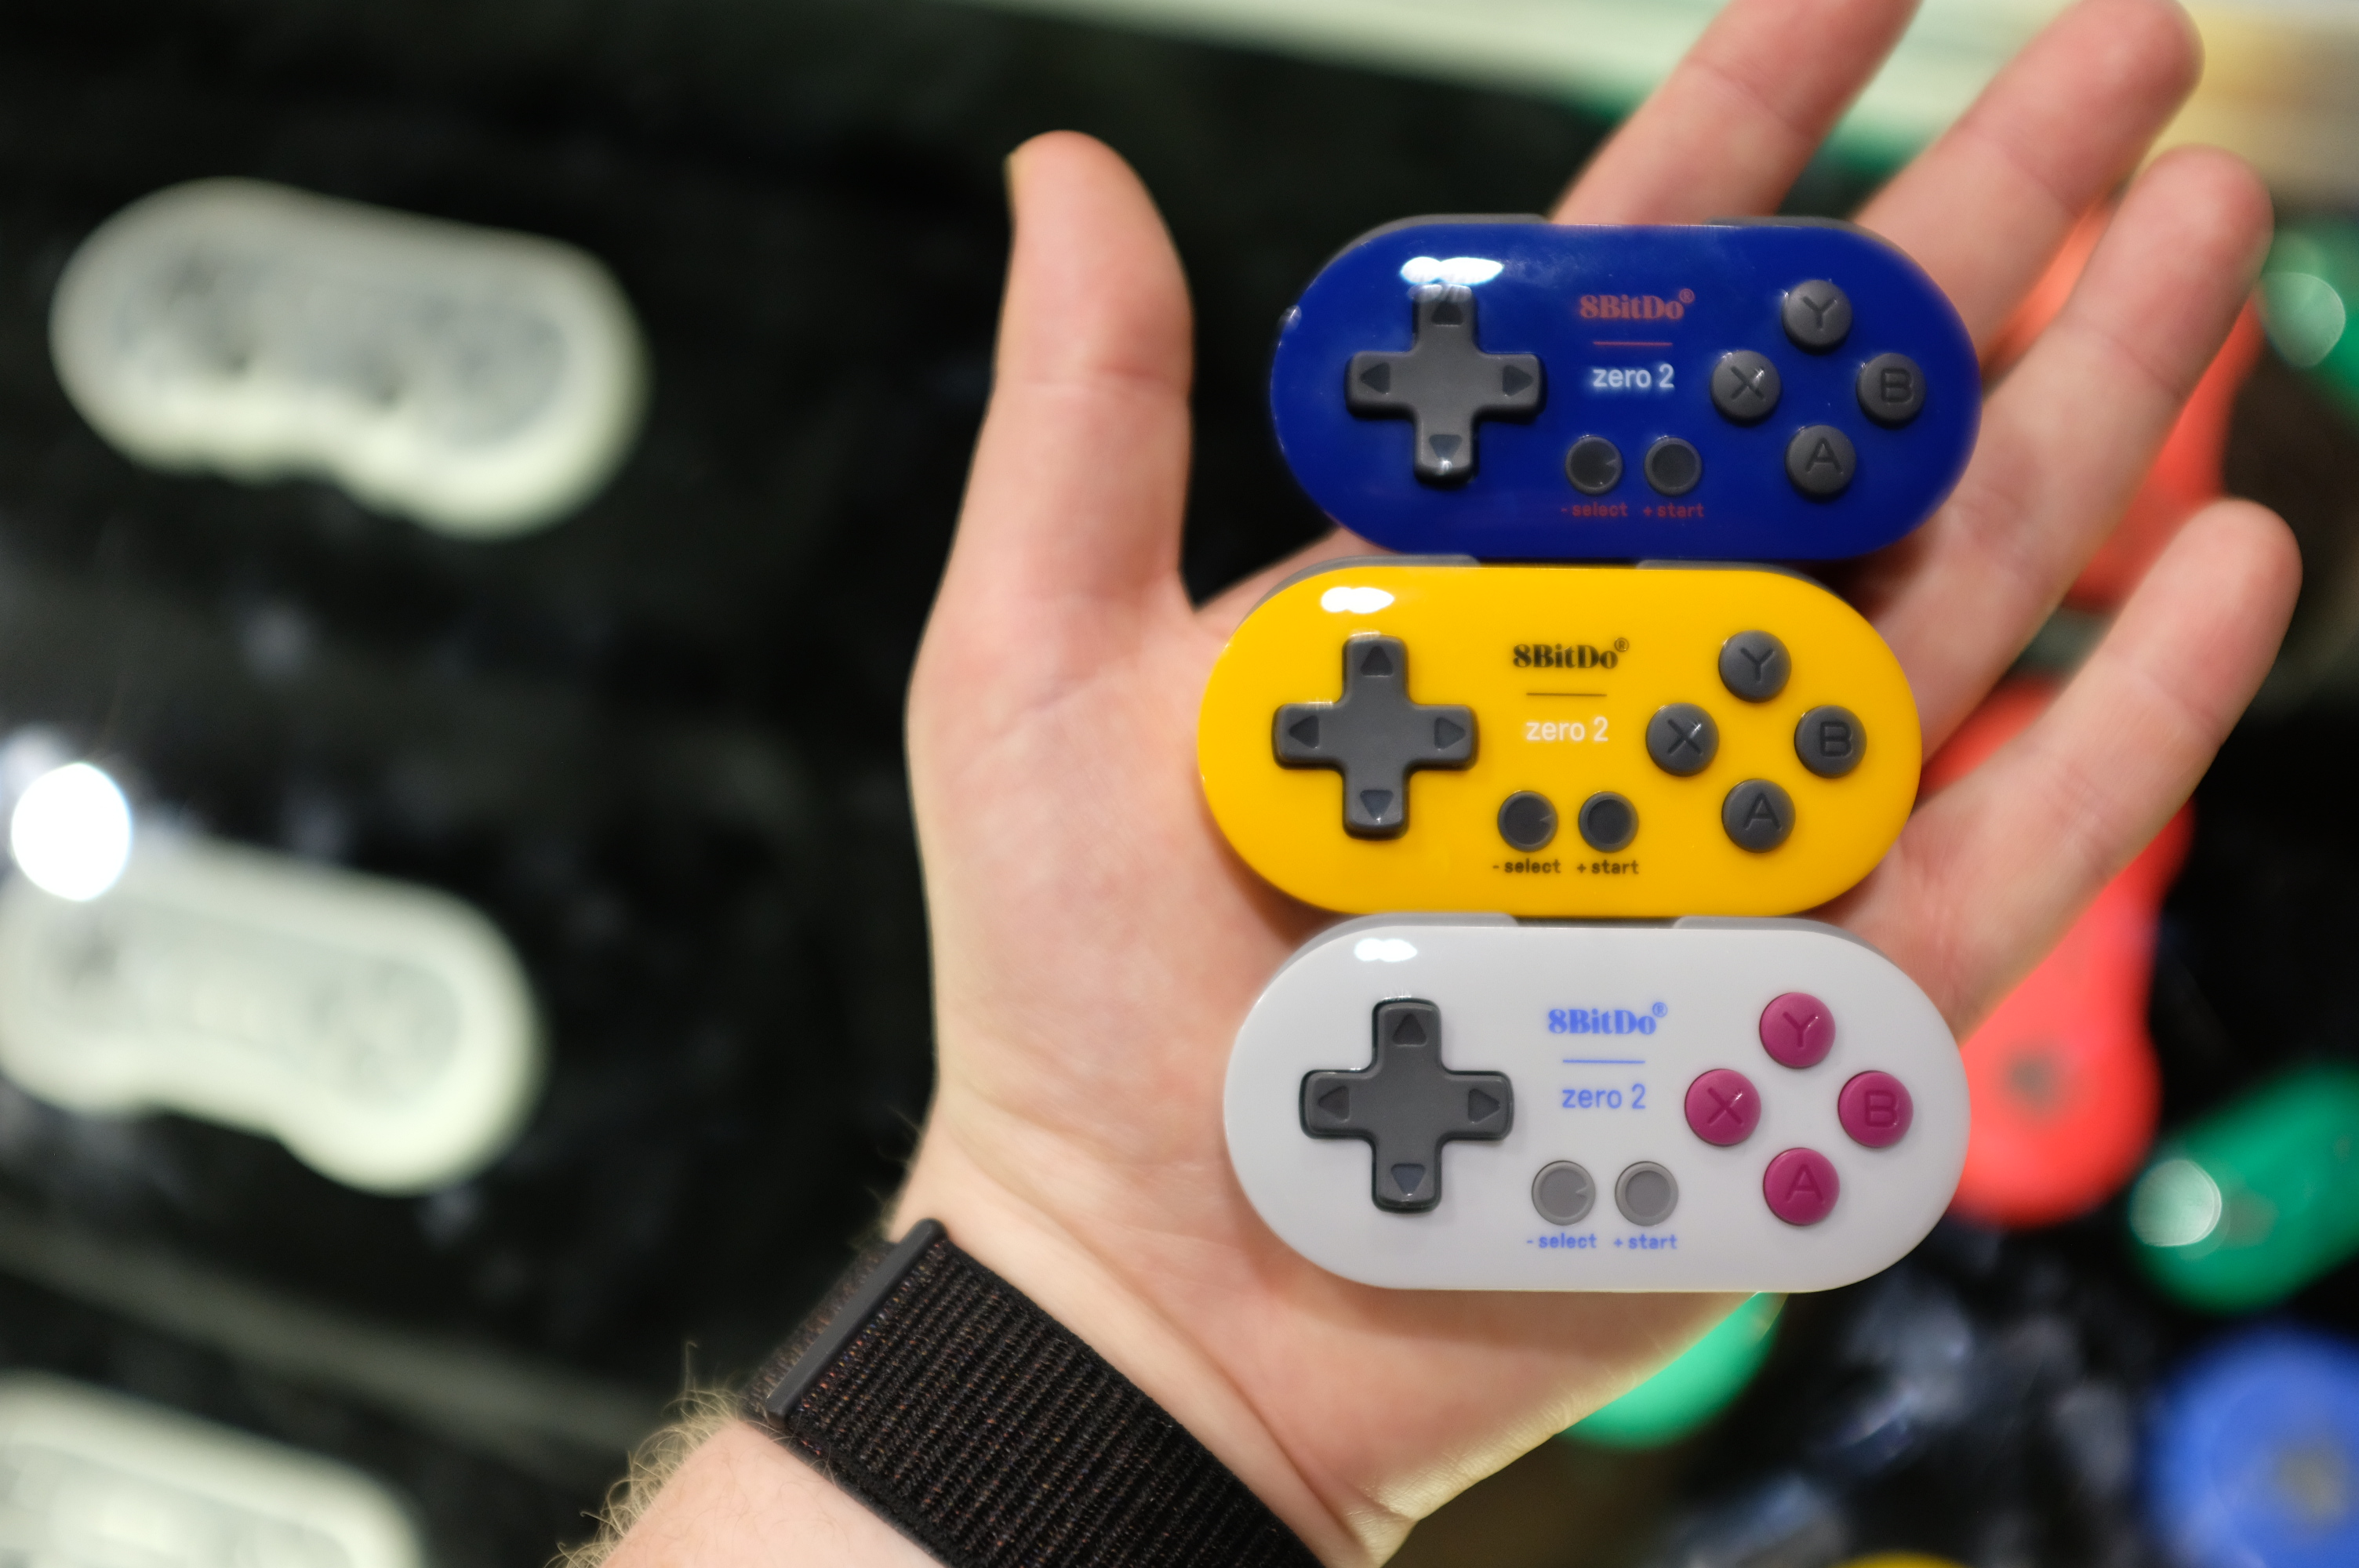 Check out this adorable bluetooth controller for the Nintendo Switch